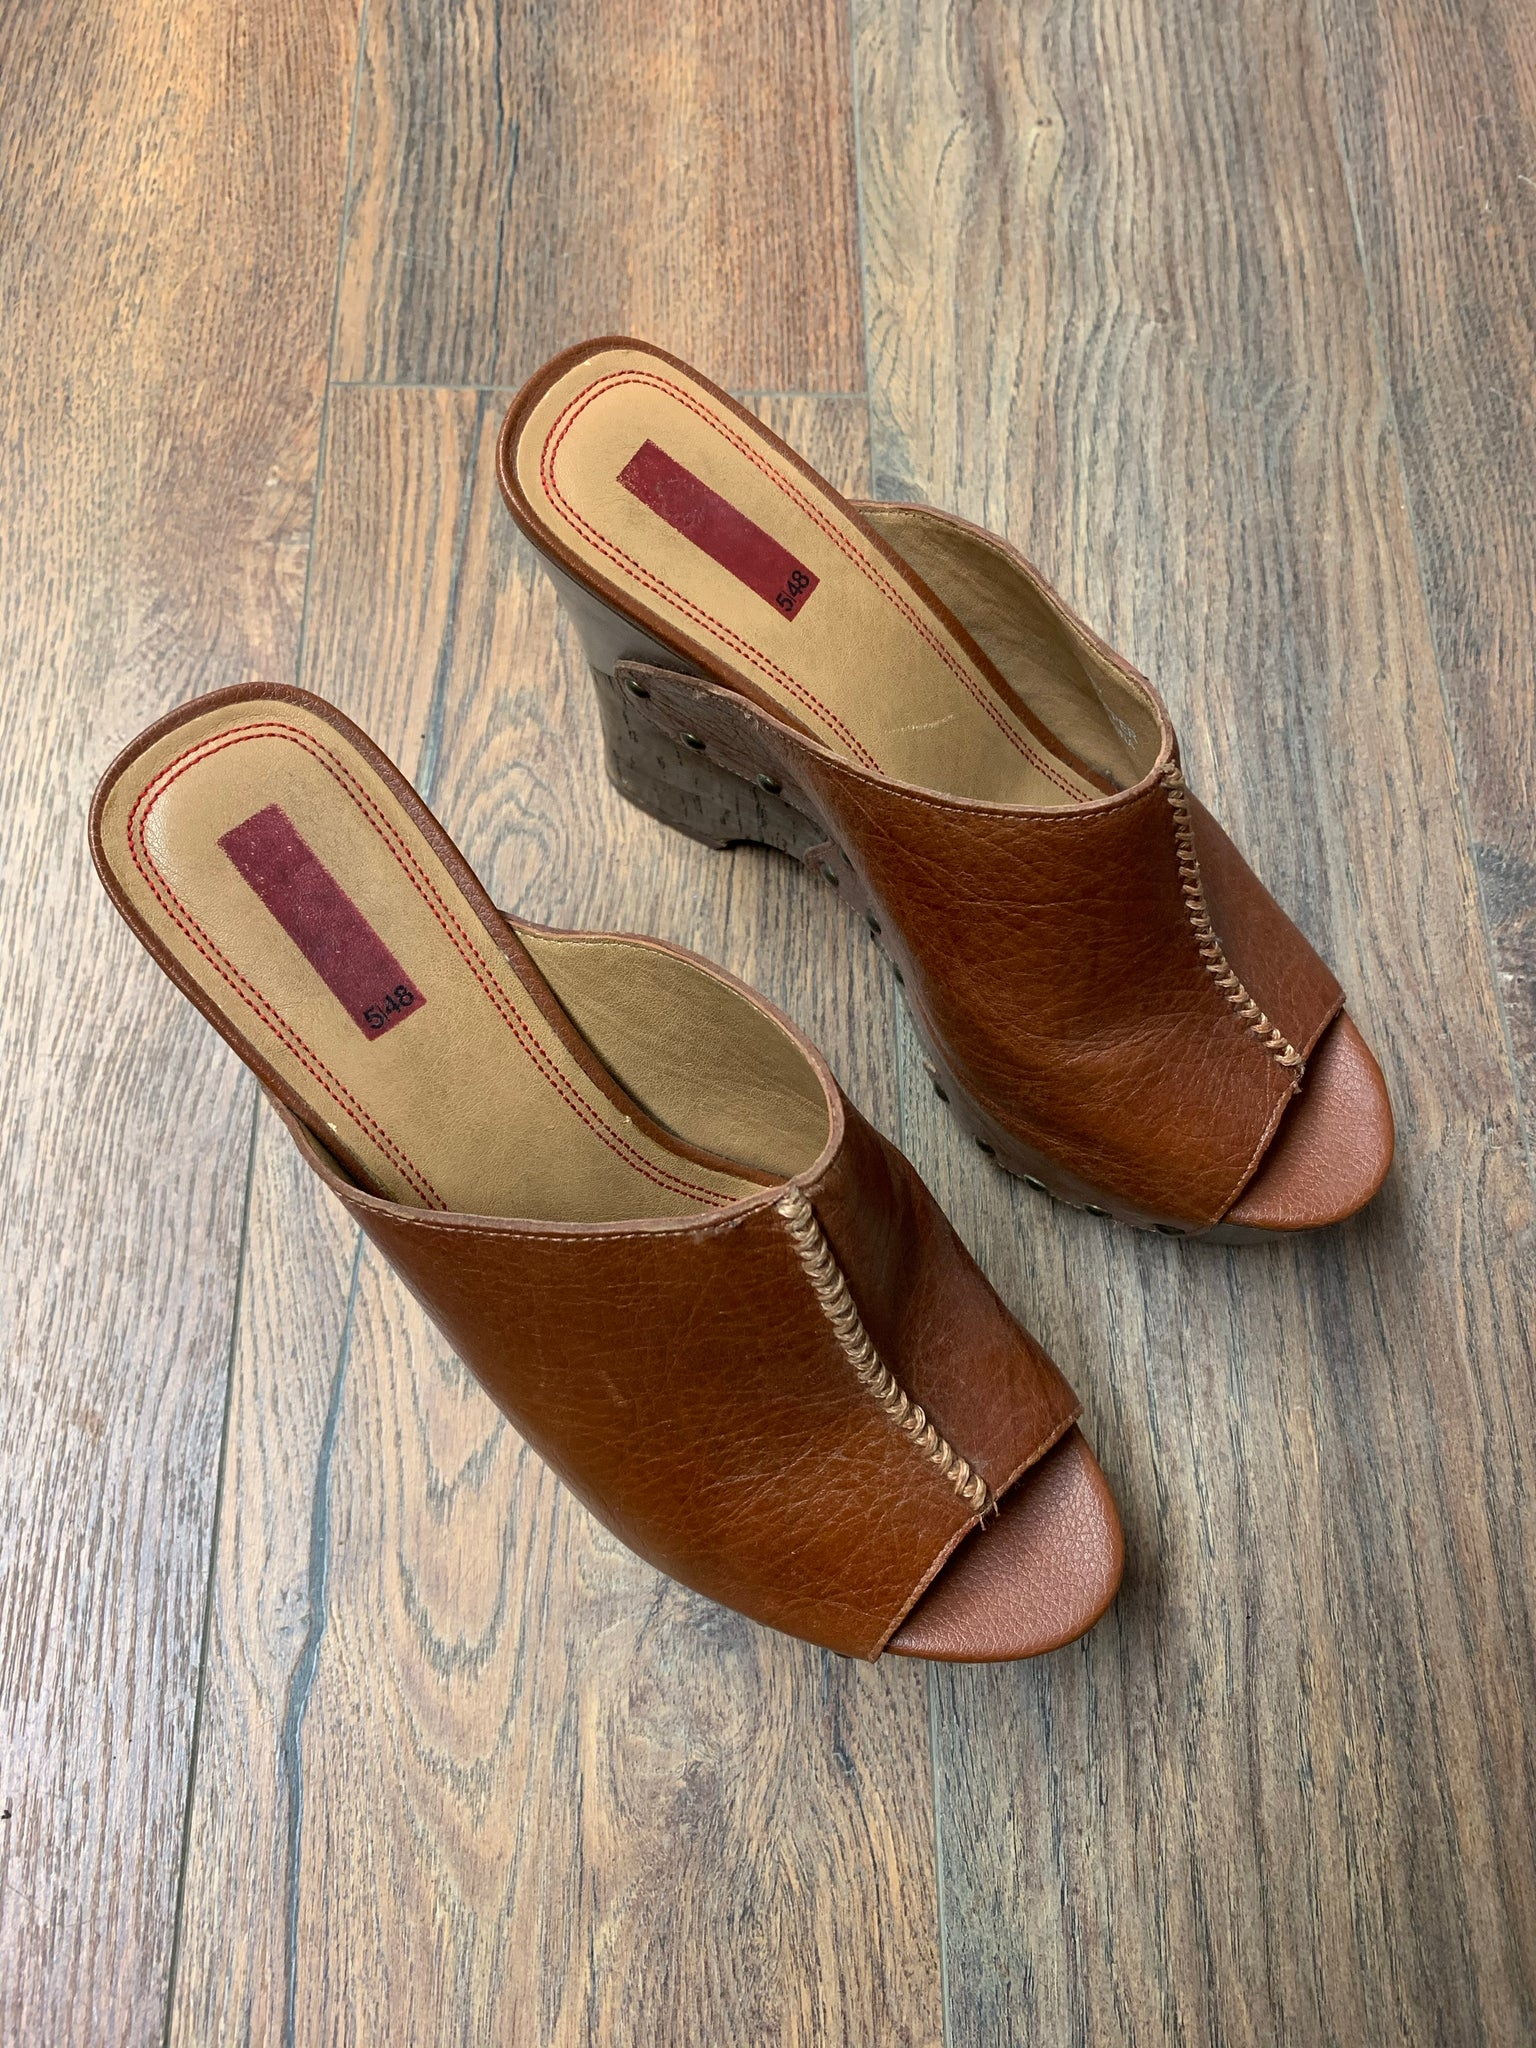 5/48 Saks Fifth Avenue Clog